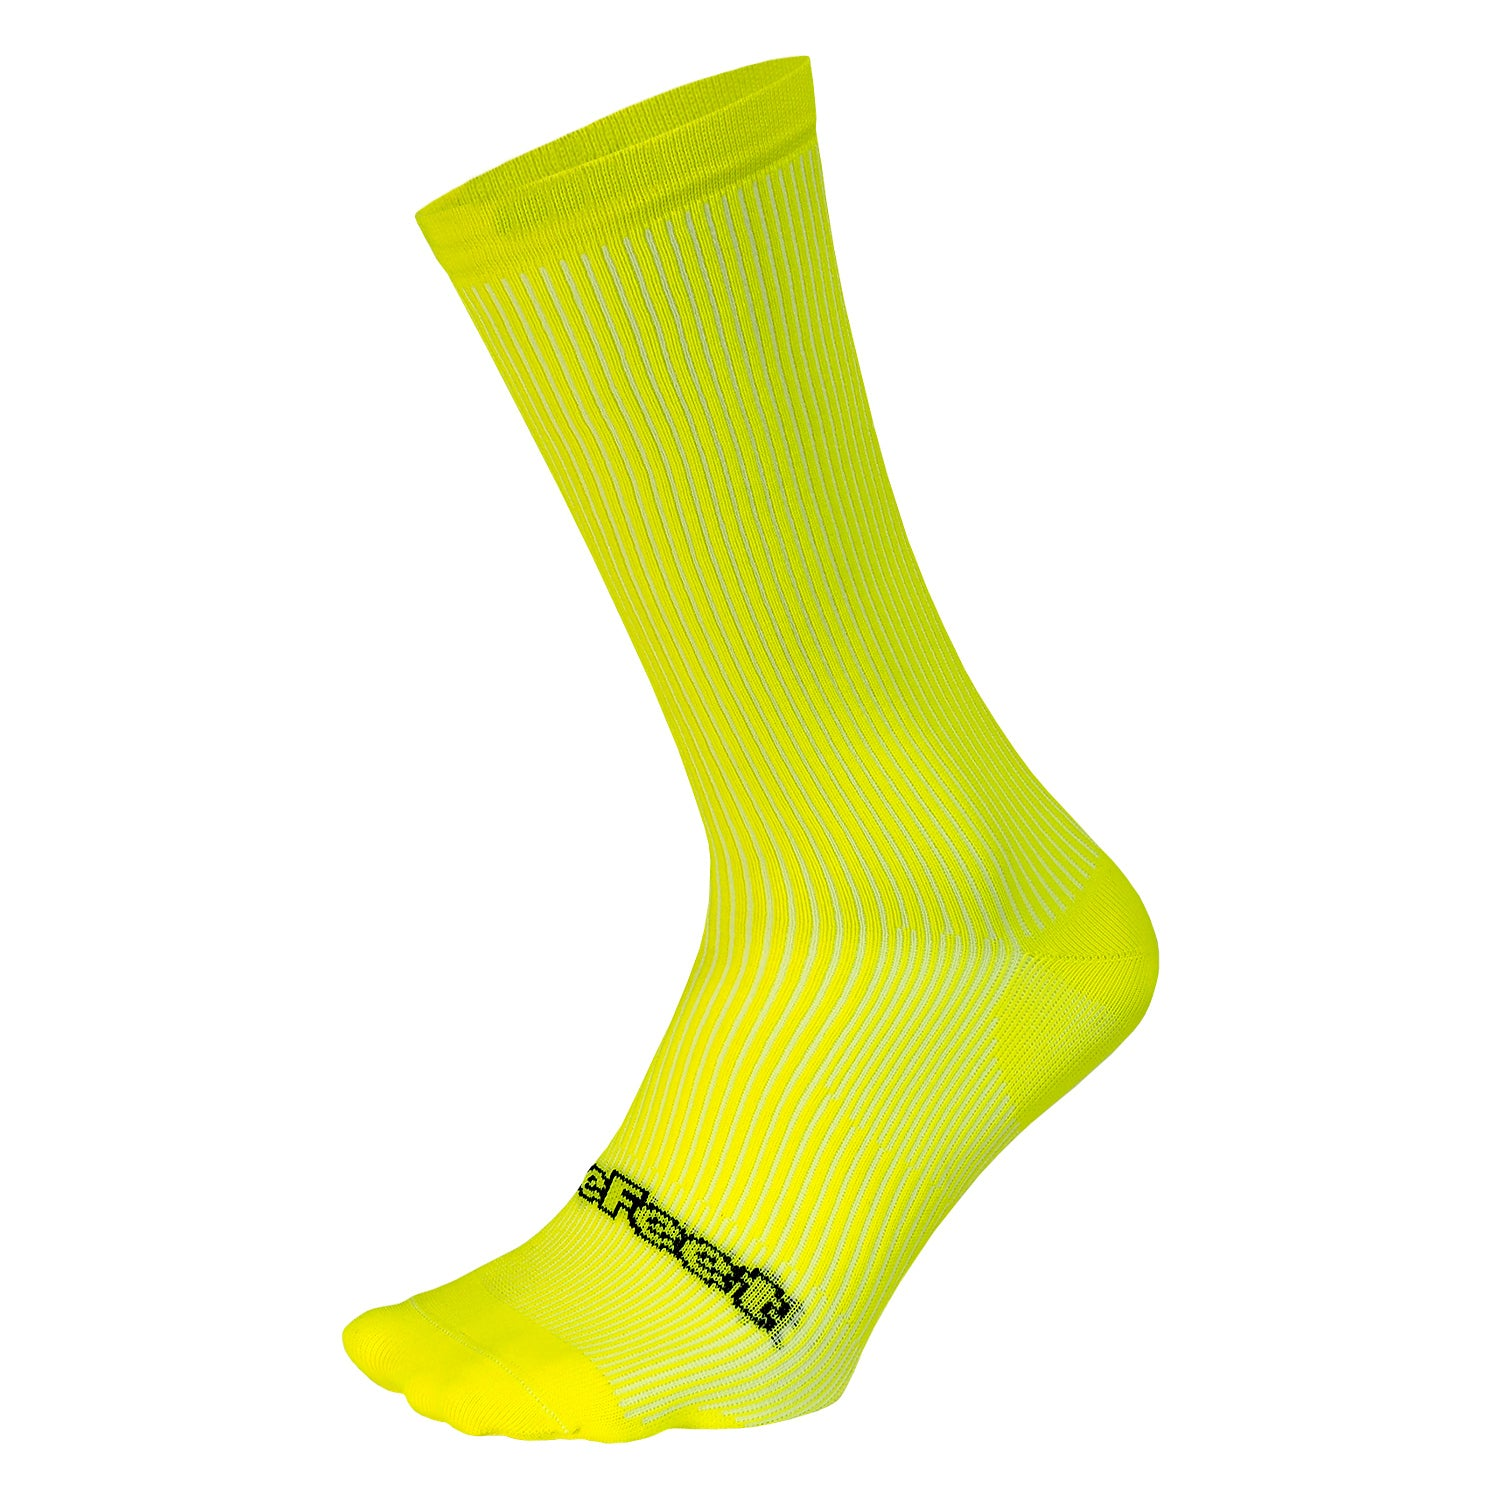 Evo Disruptor Neon Yellow